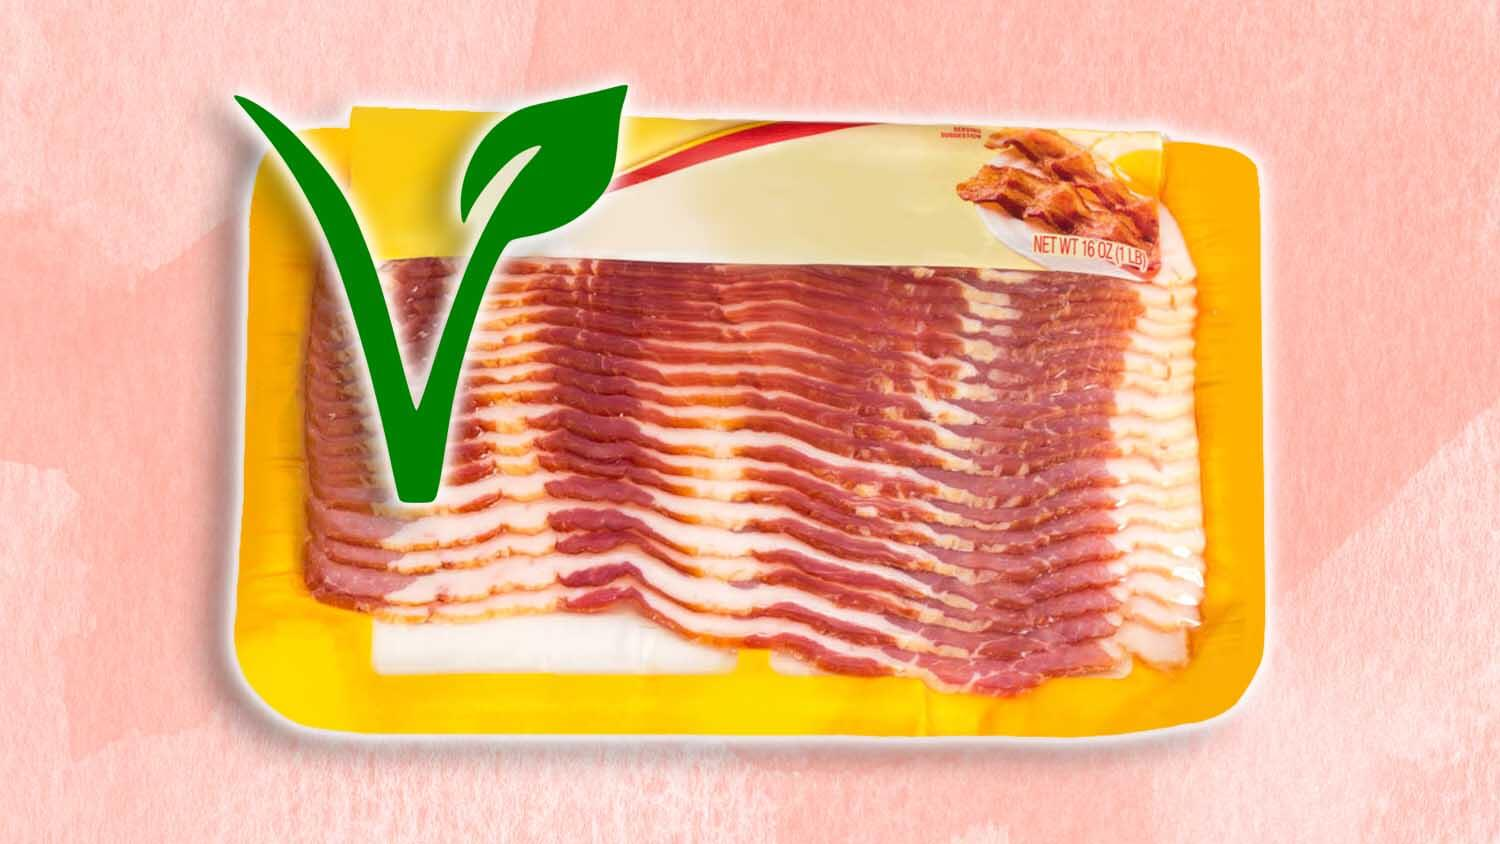 Vegan Bacon, Chicken, and Sausage Are Coming to Nestlé